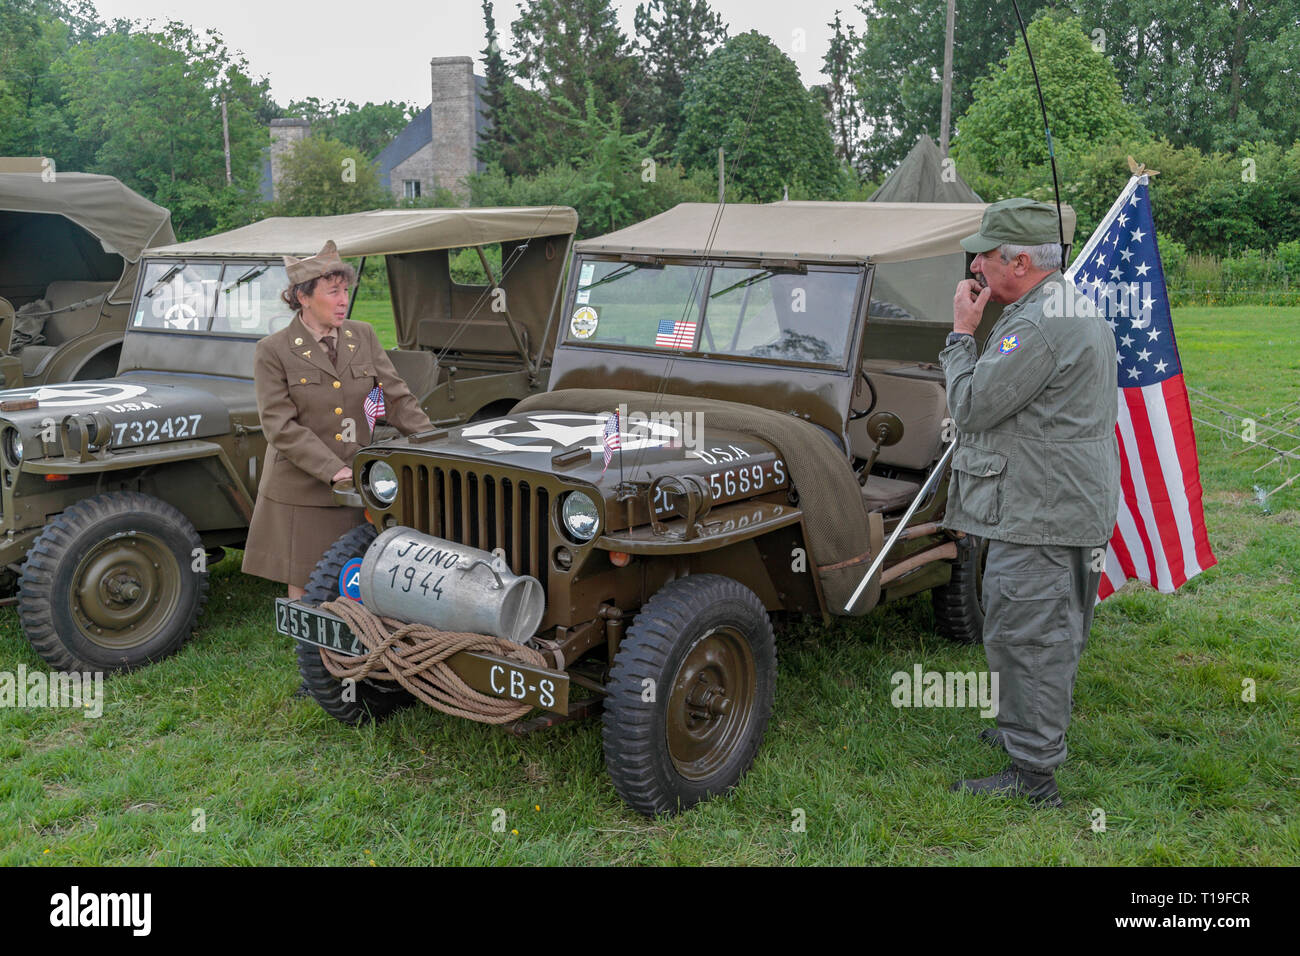 A Willys MB jeep part of the D-Day 70th Anniversary events, re-enactors and vehicle displays in Sainte-Mère-Église, Normandy, France in June 2014. Stock Photo